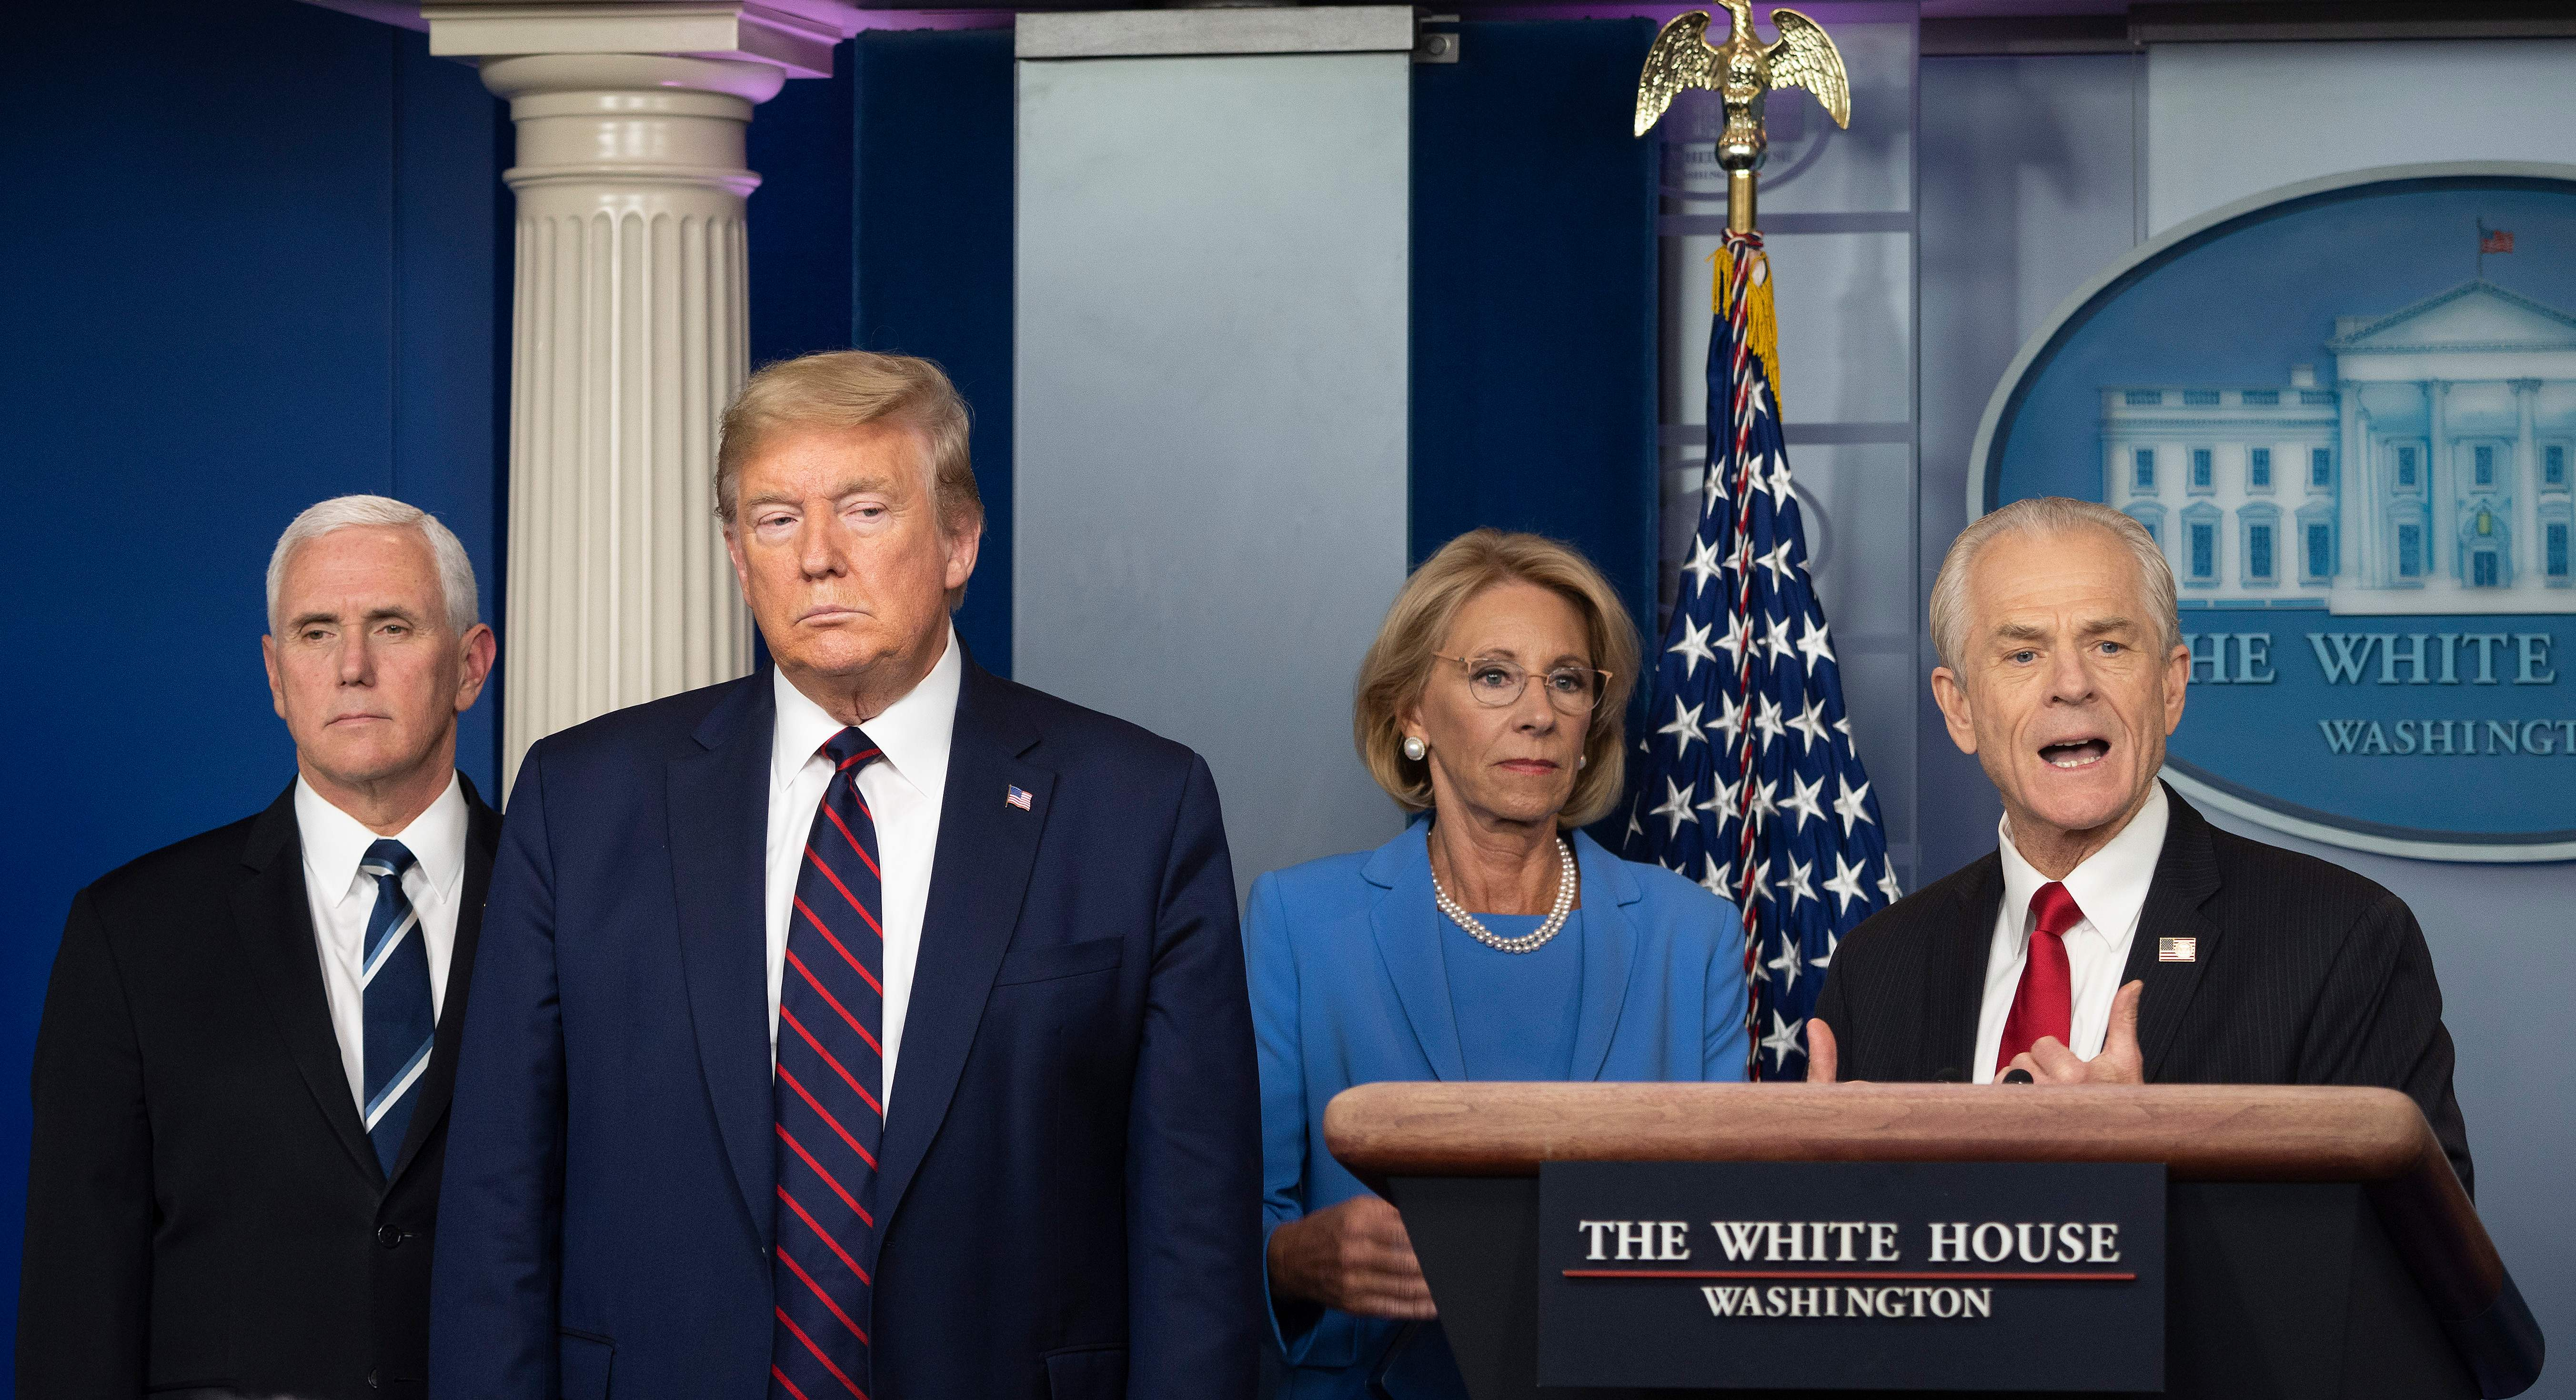 White House Trade and Manufacturing Policy adviser Peter Navarro (R) speaks alongside US President Donald Trump, Vice President Mike Pence (L) and Education Secretary Betsy DeVos (2nd R) during the daily briefing on the novel coronavirus, COVID-19, in the Brady Briefing Room at the White House on March 27, 2020, in Washington, DC. (Photo by JIM WATSON/AFP via Getty Images)